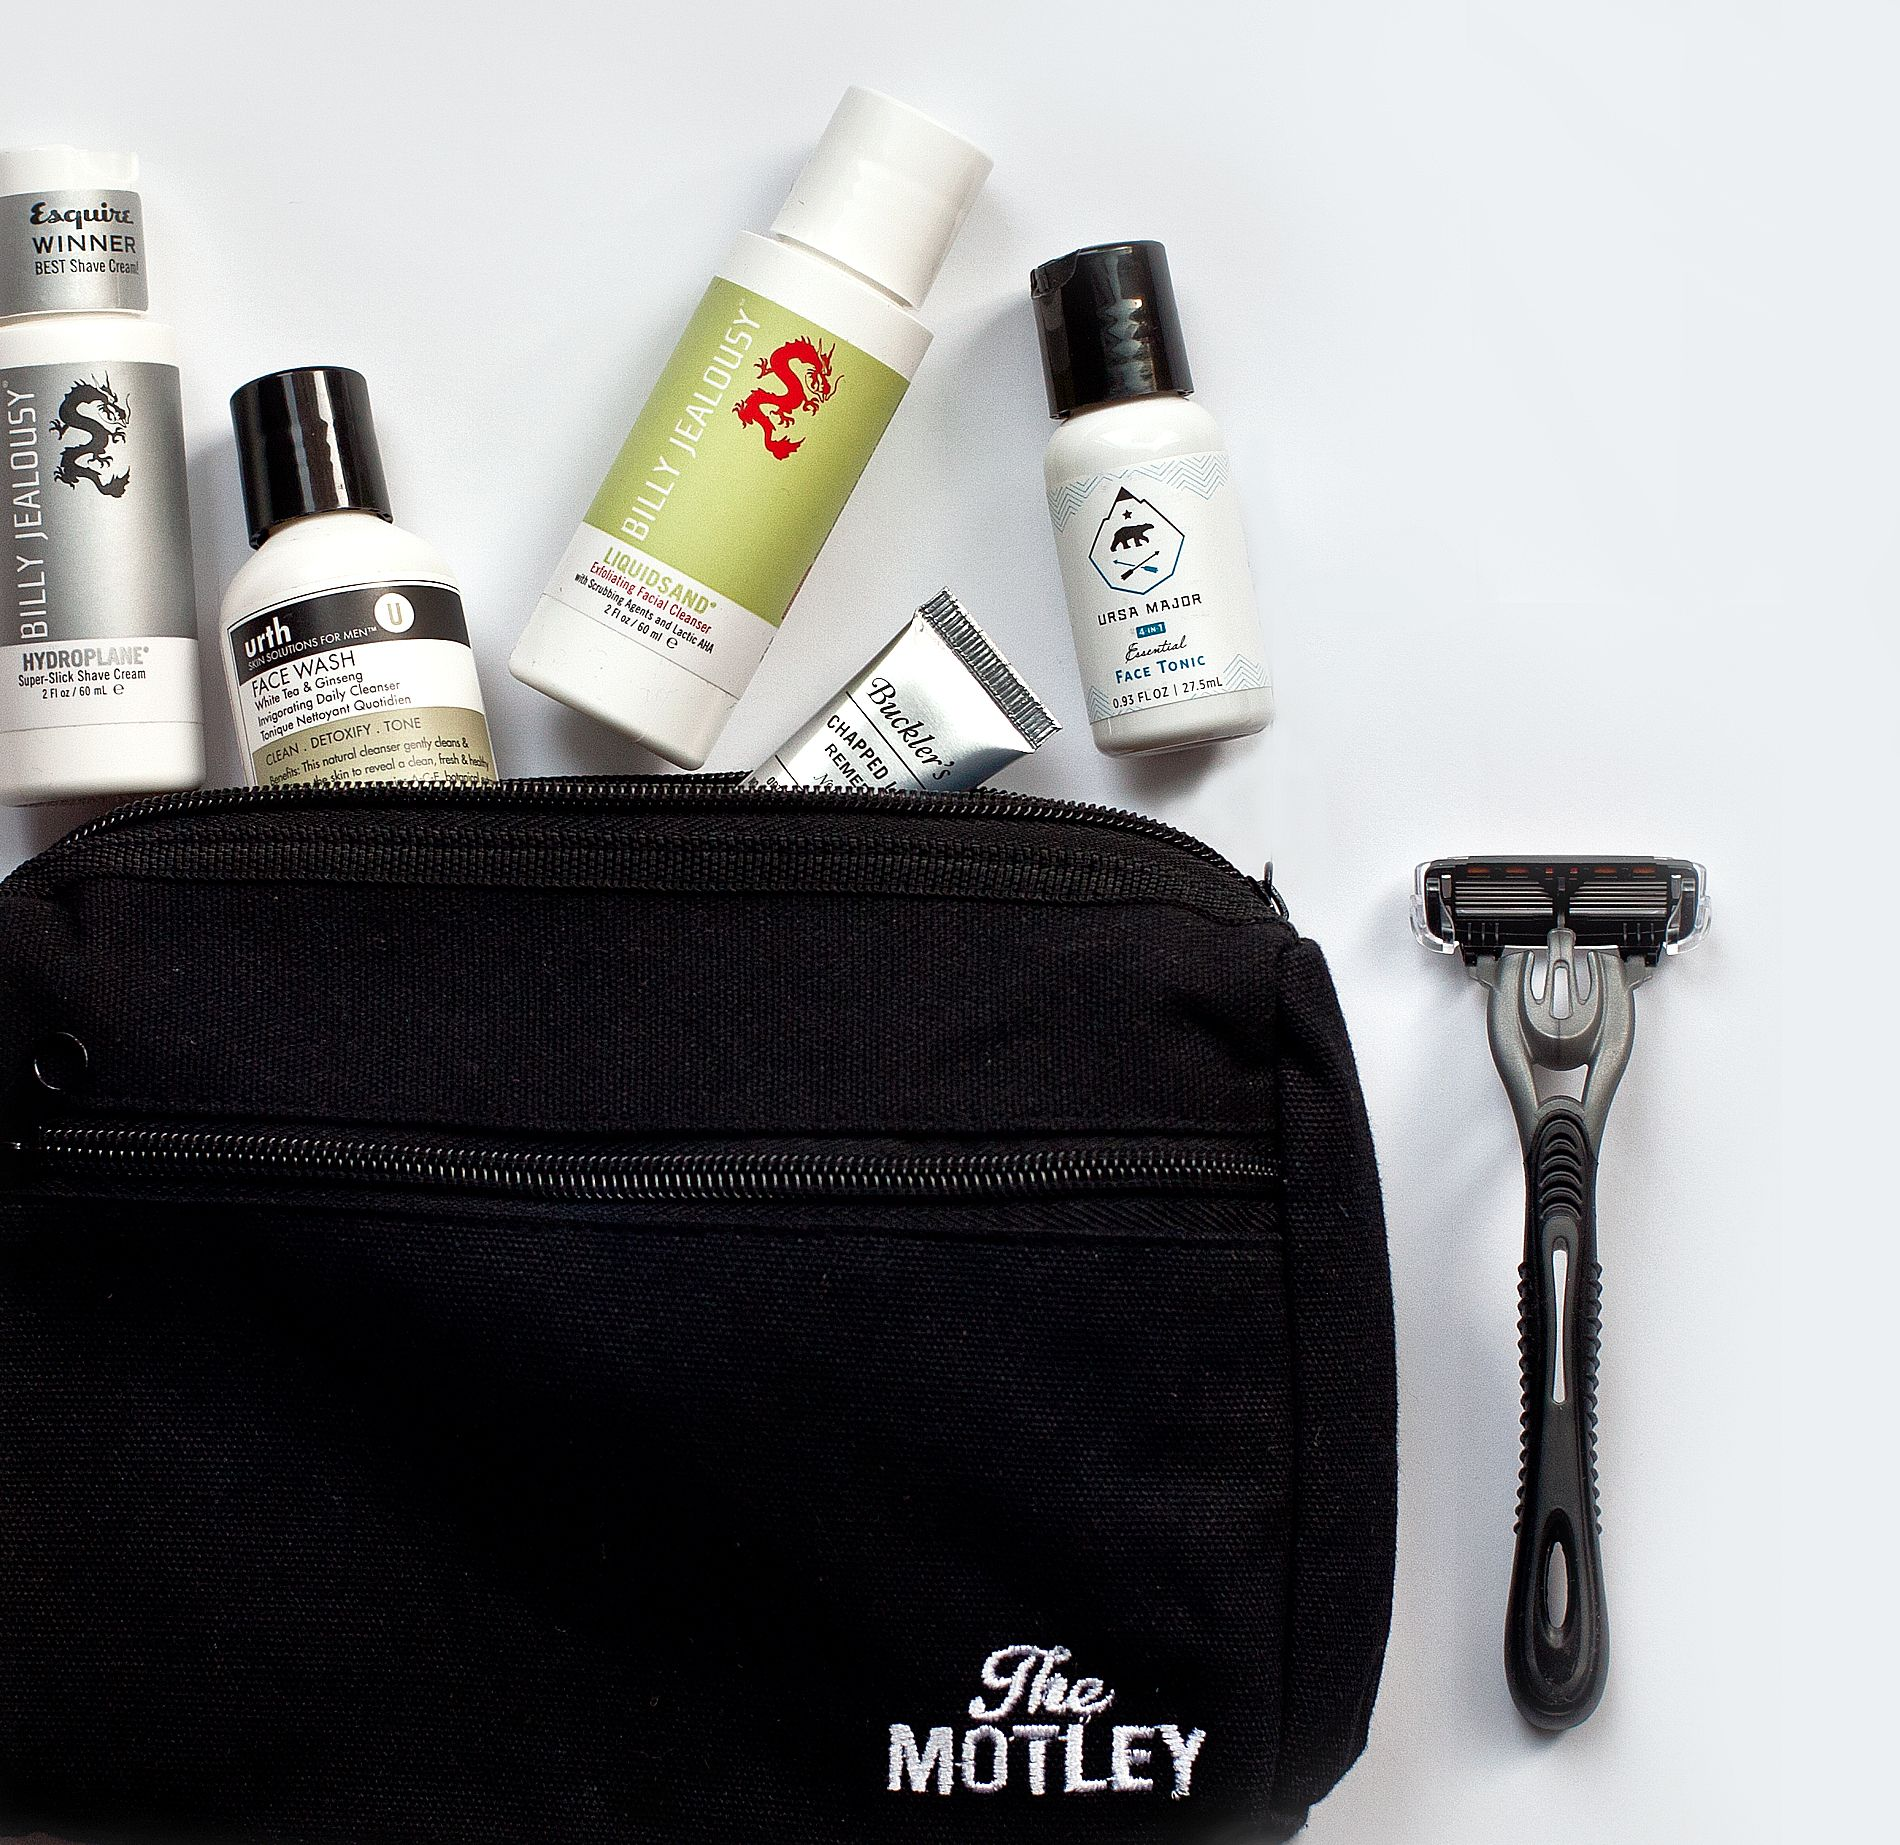 Father's Day Gifts ideas your dad will actually like // The Motley Test Run Kit // #FathersDay